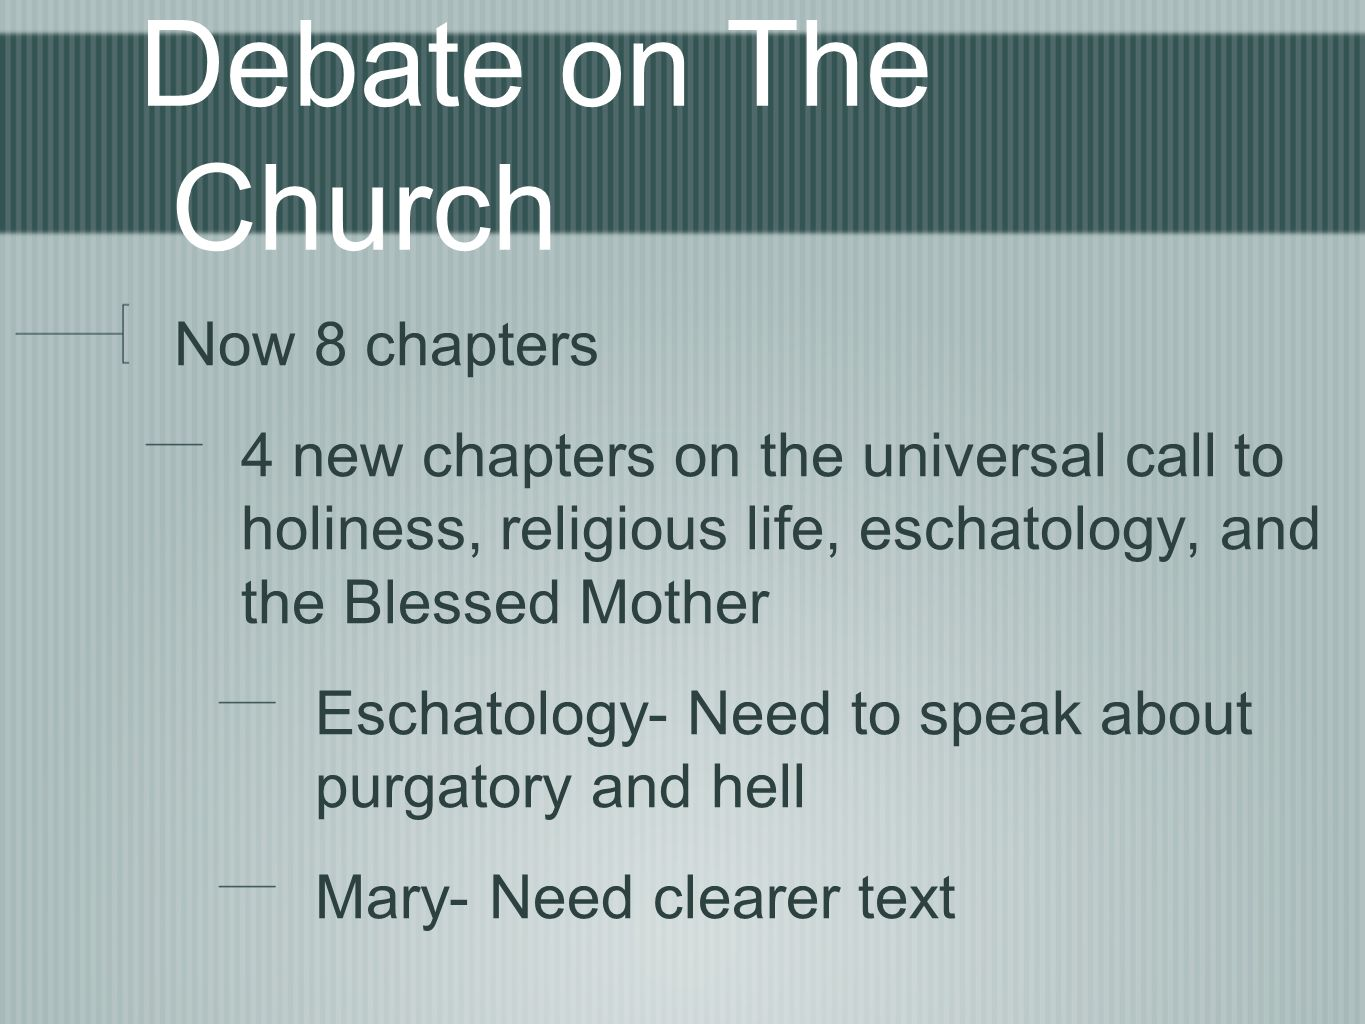 Debate on The Church Now 8 chapters 4 new chapters on the universal call to holiness, religious life, eschatology, and the Blessed Mother Eschatology-